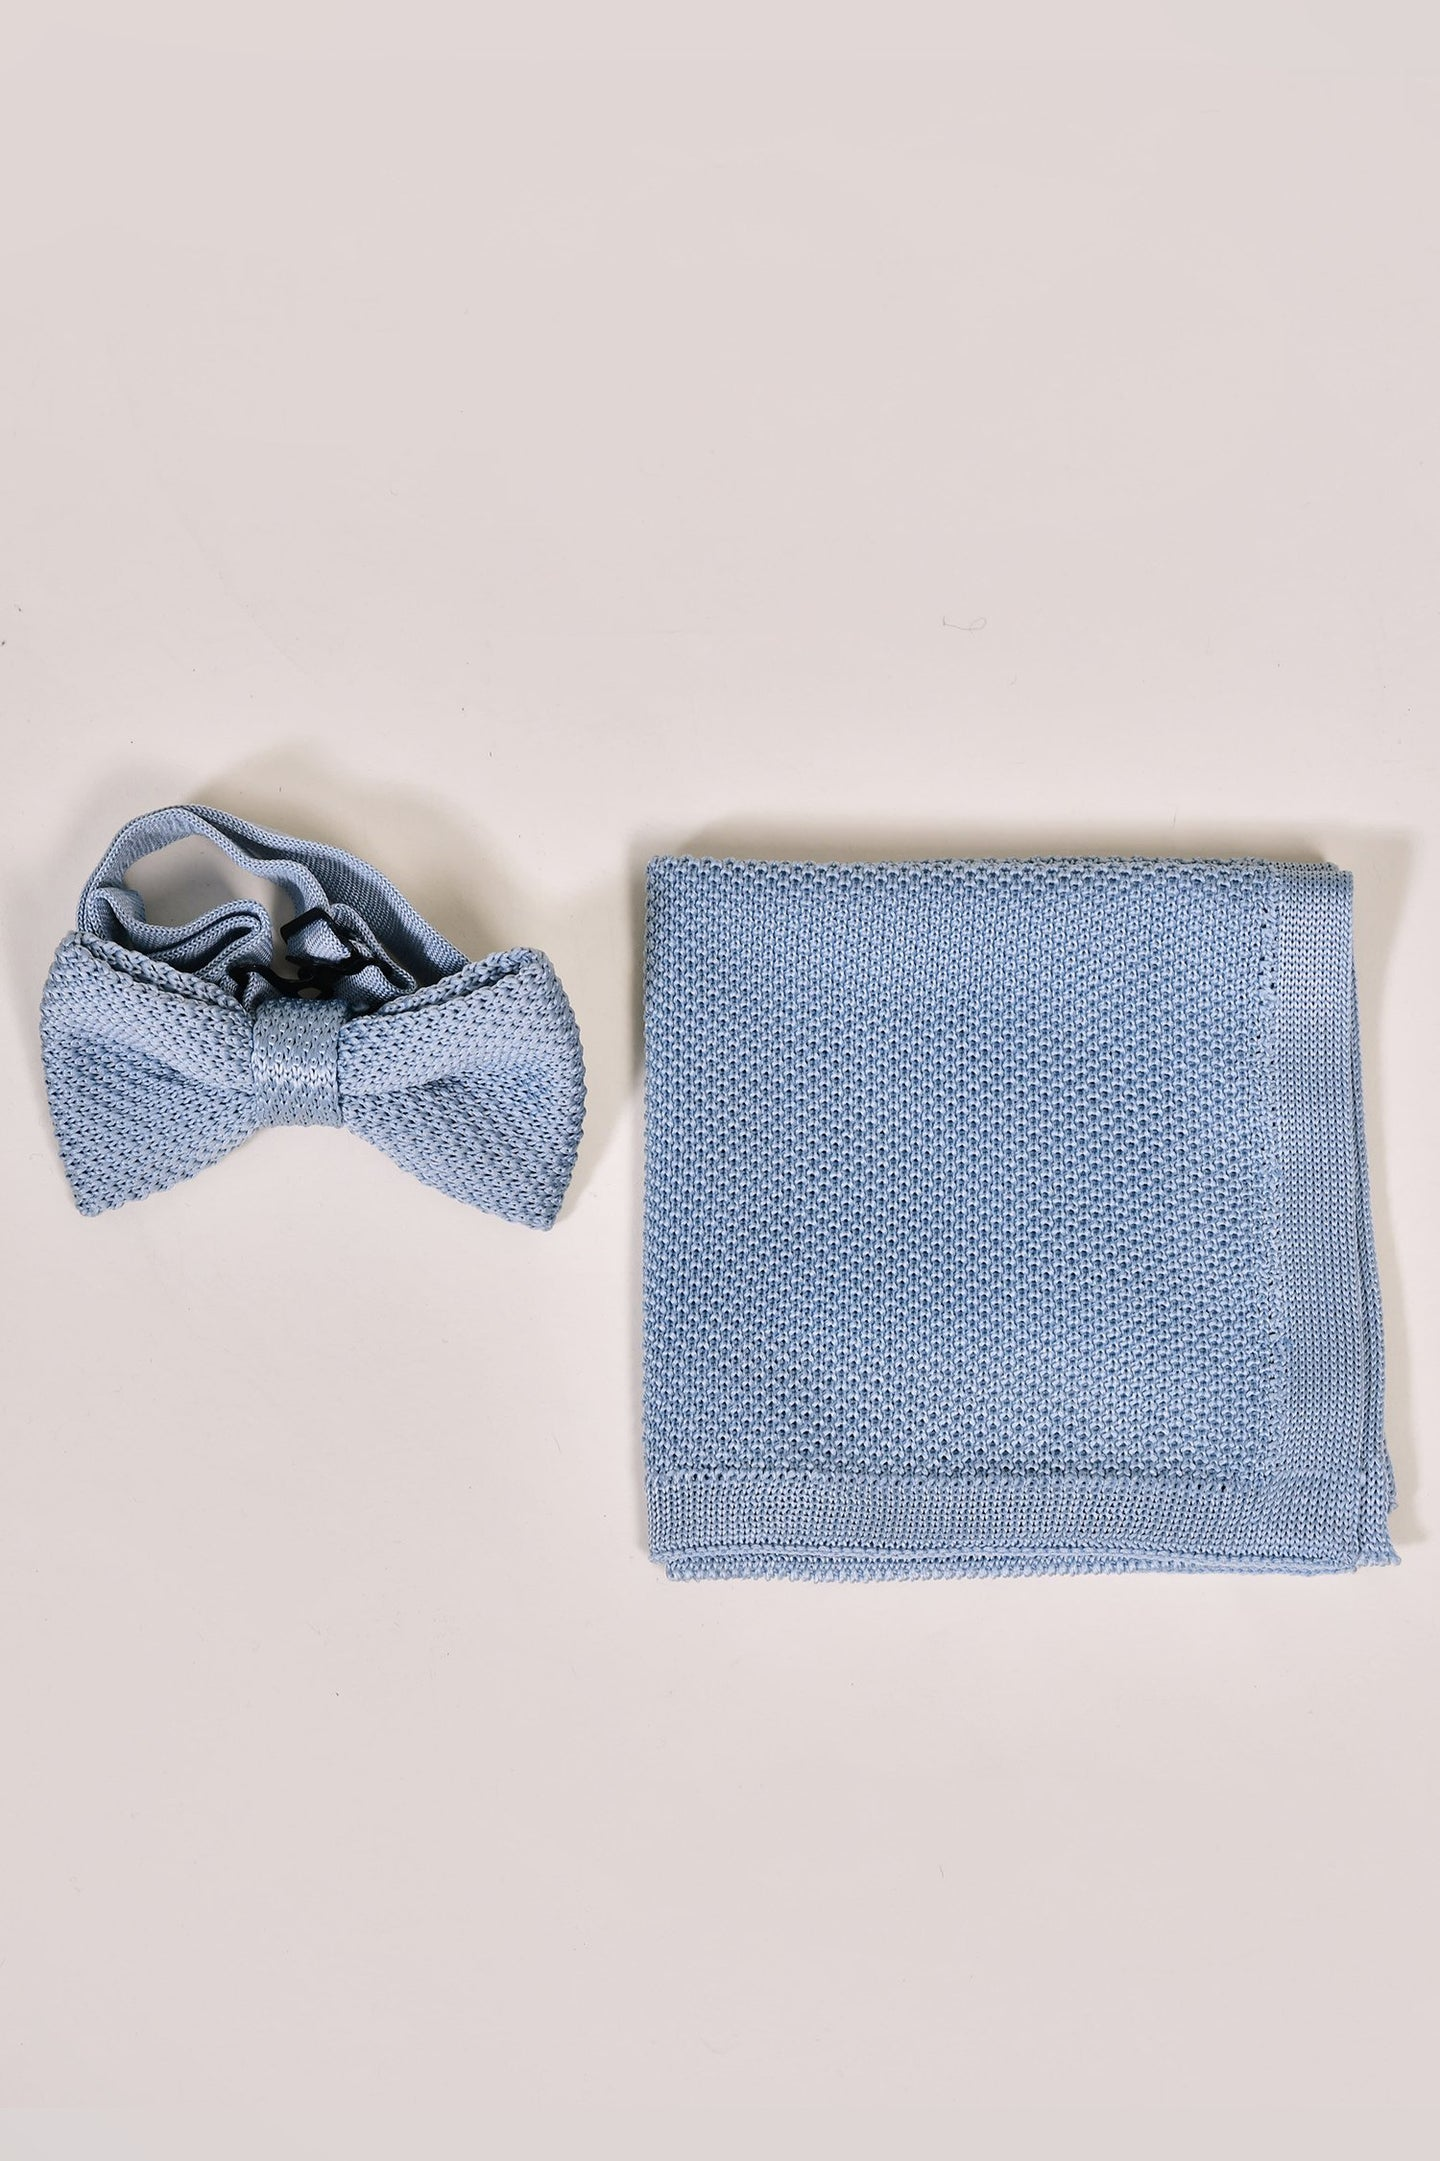 Broni&Bo Children's Misty Blue Knitted Bow Tie & Pocket Square Set